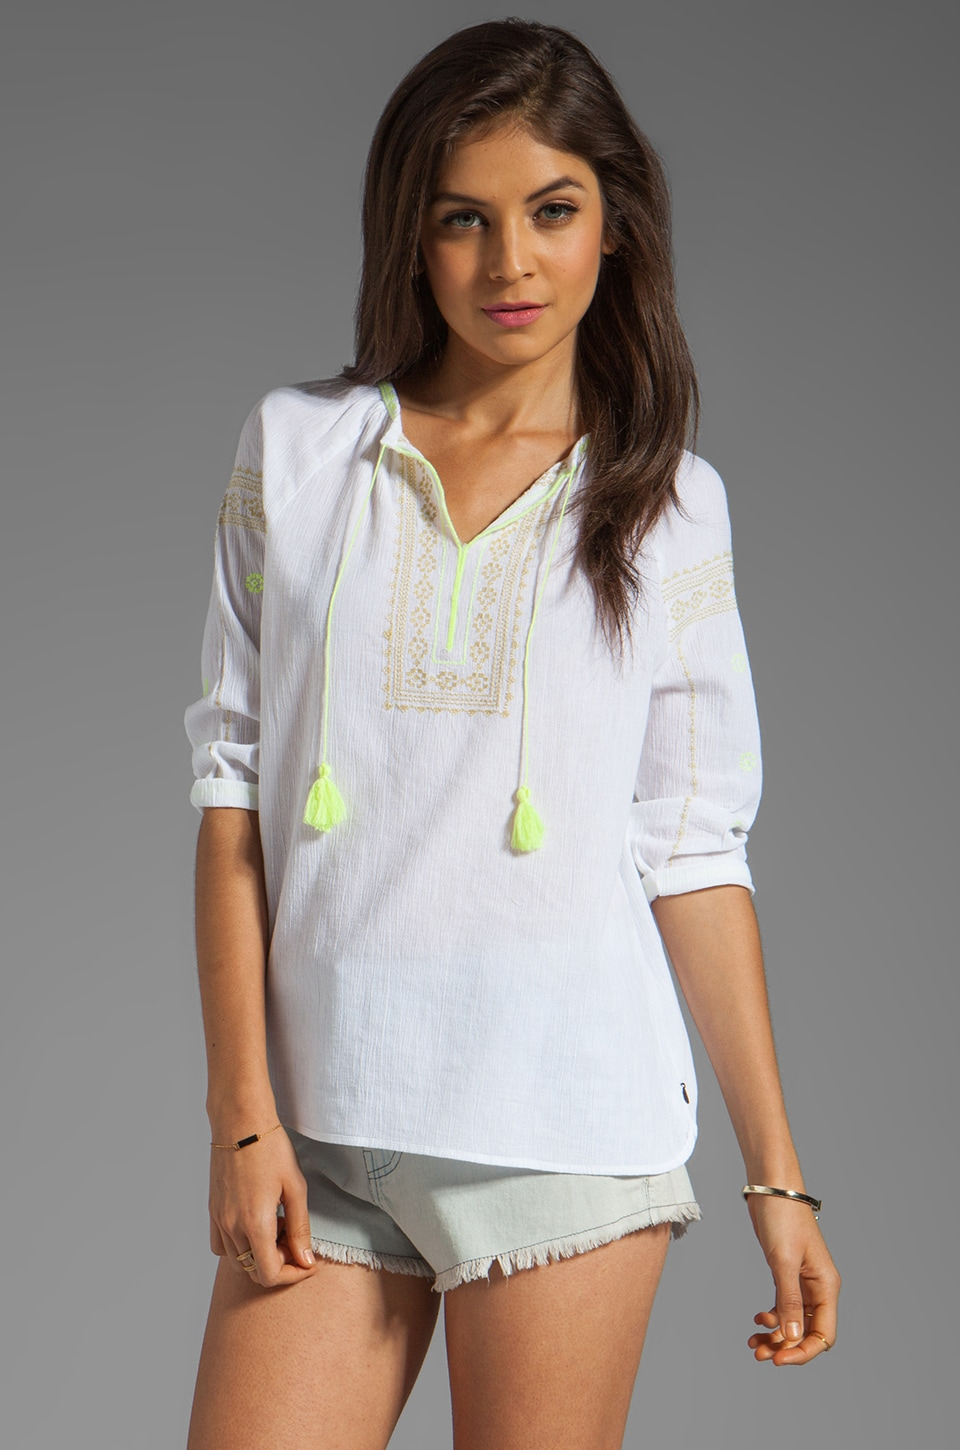 Maison Scotch Tunic with Embroidery in Neon Yellow